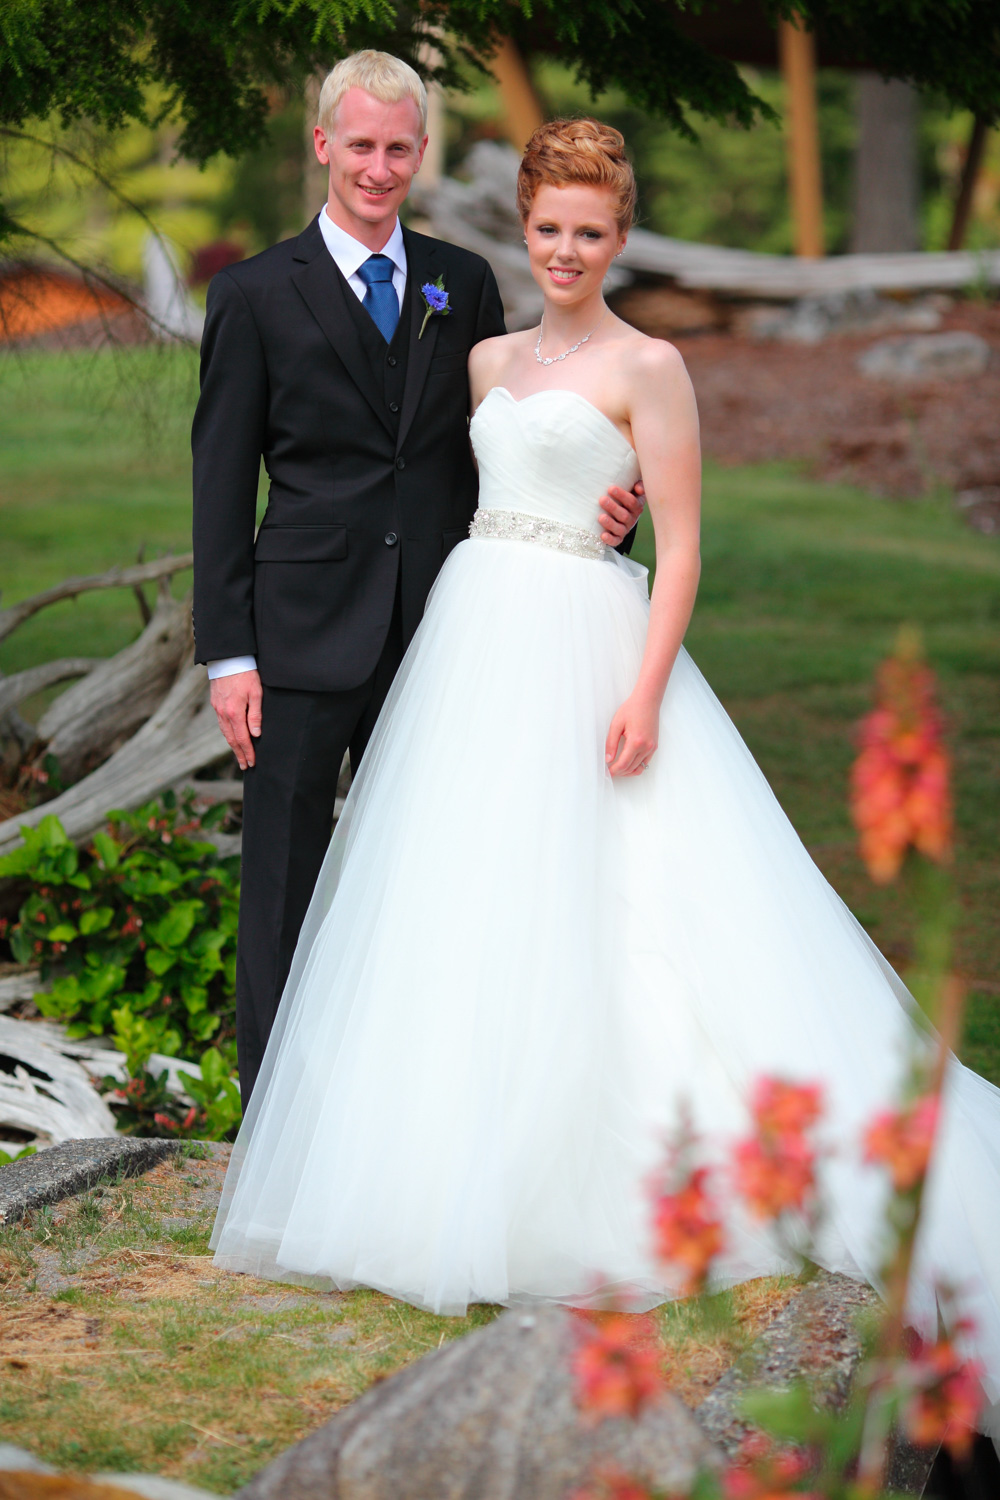 Wedding Photos McCormick Woods Golf Course Port Orchard Washington 10.jpg